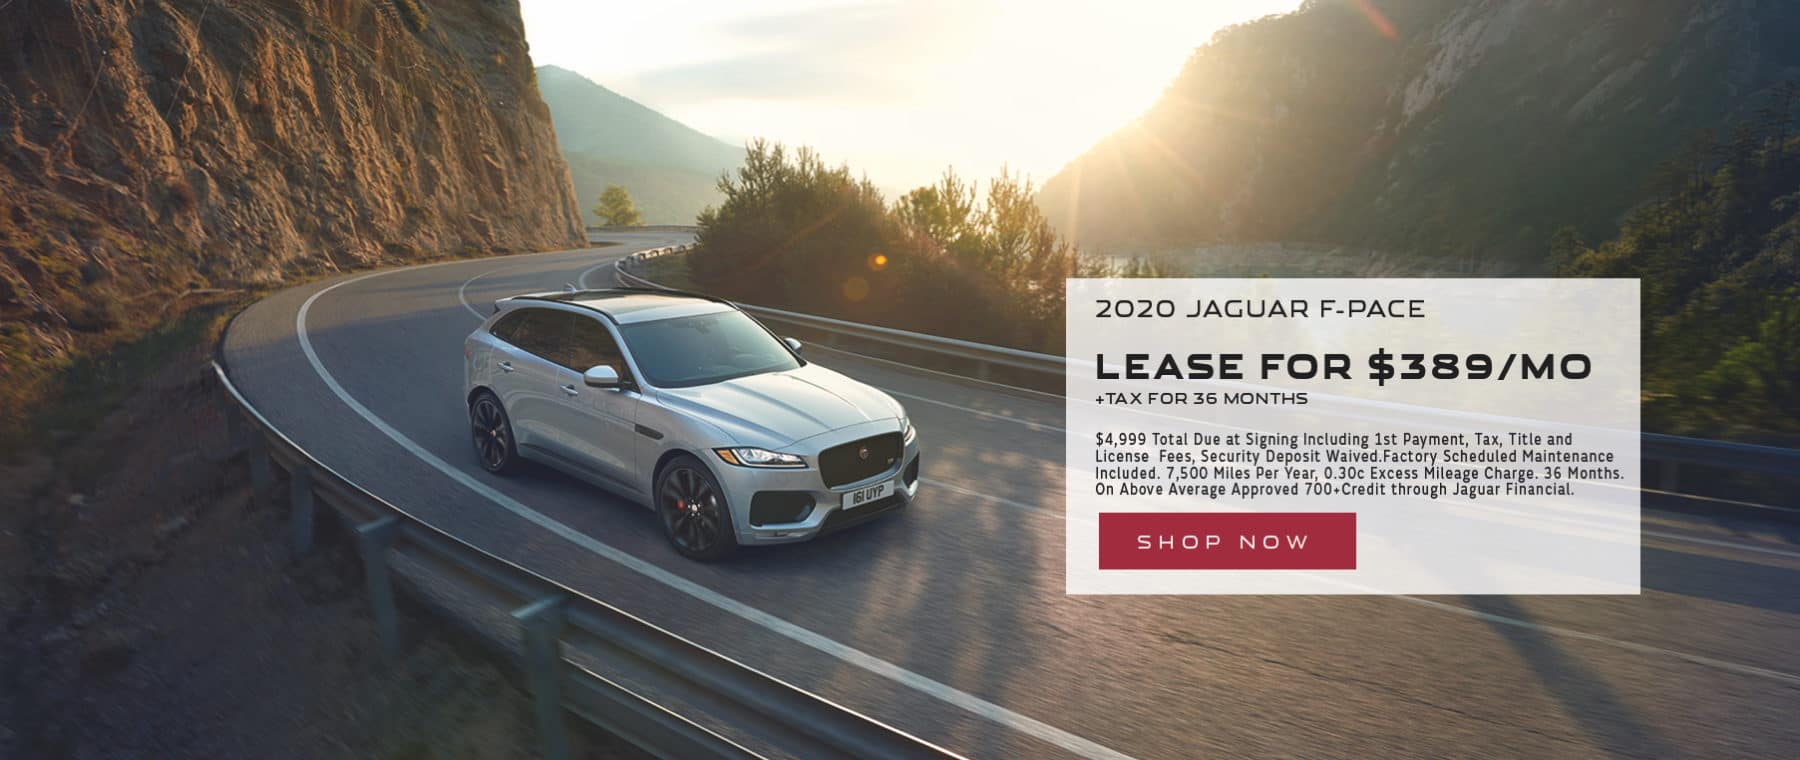 Jaguar Sept. Lease